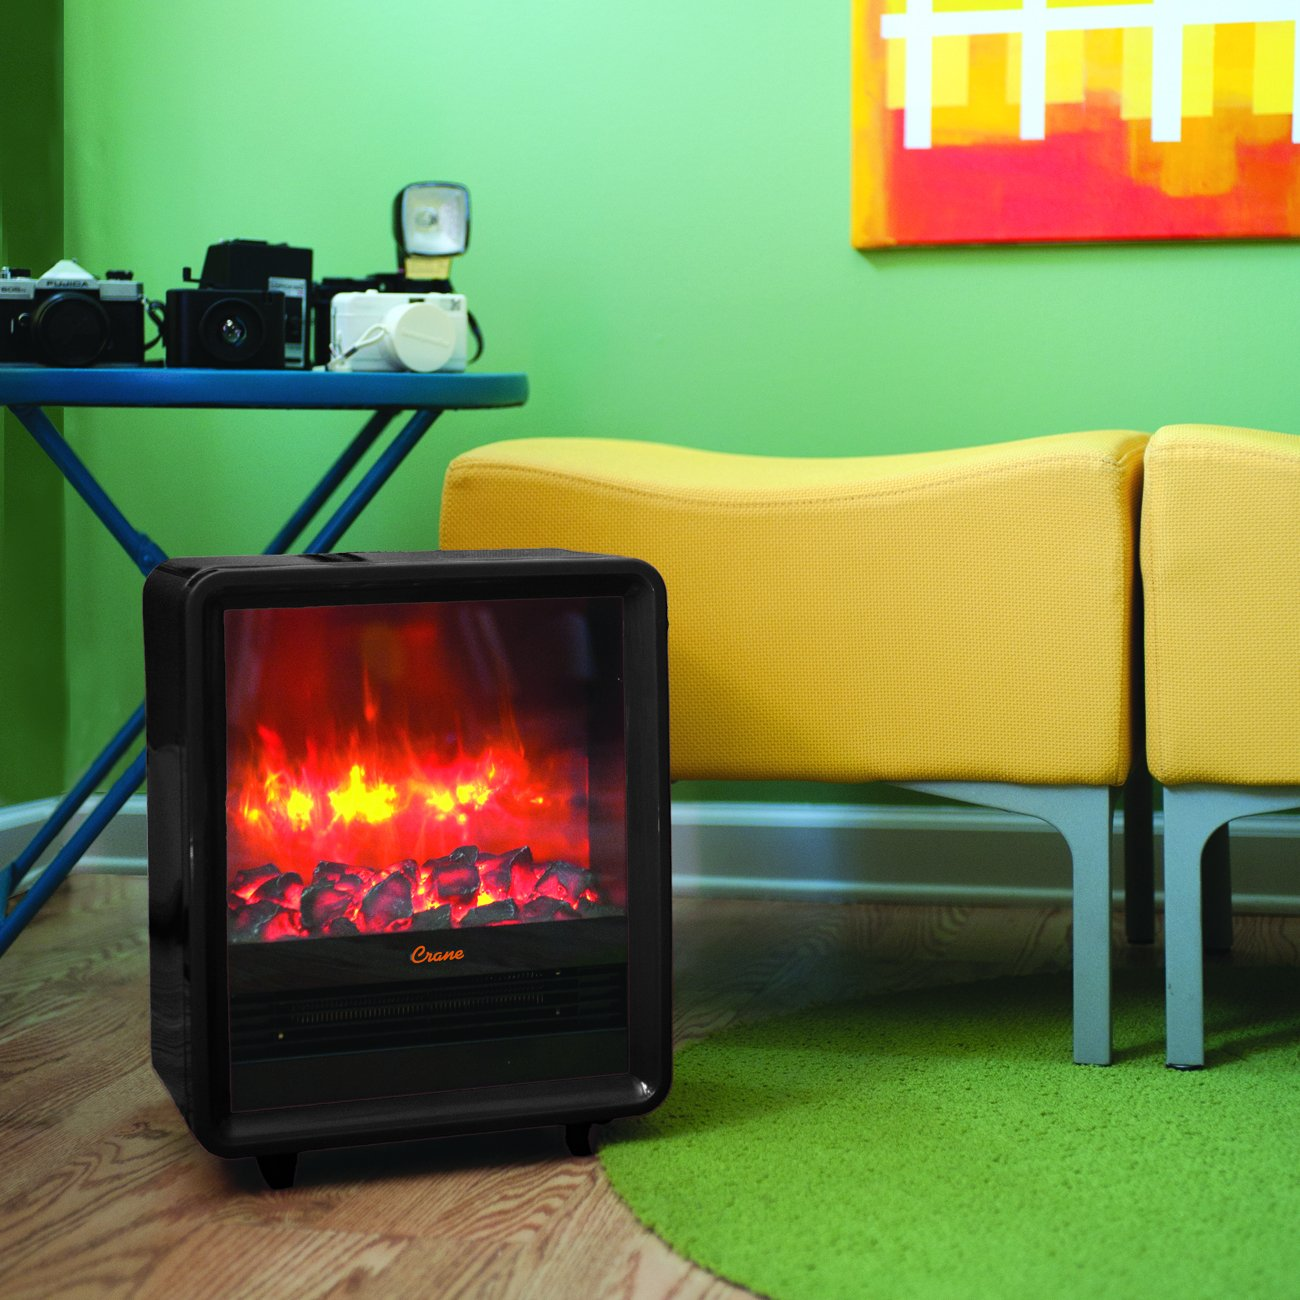 amazon com crane fireplace heater black health u0026 personal care